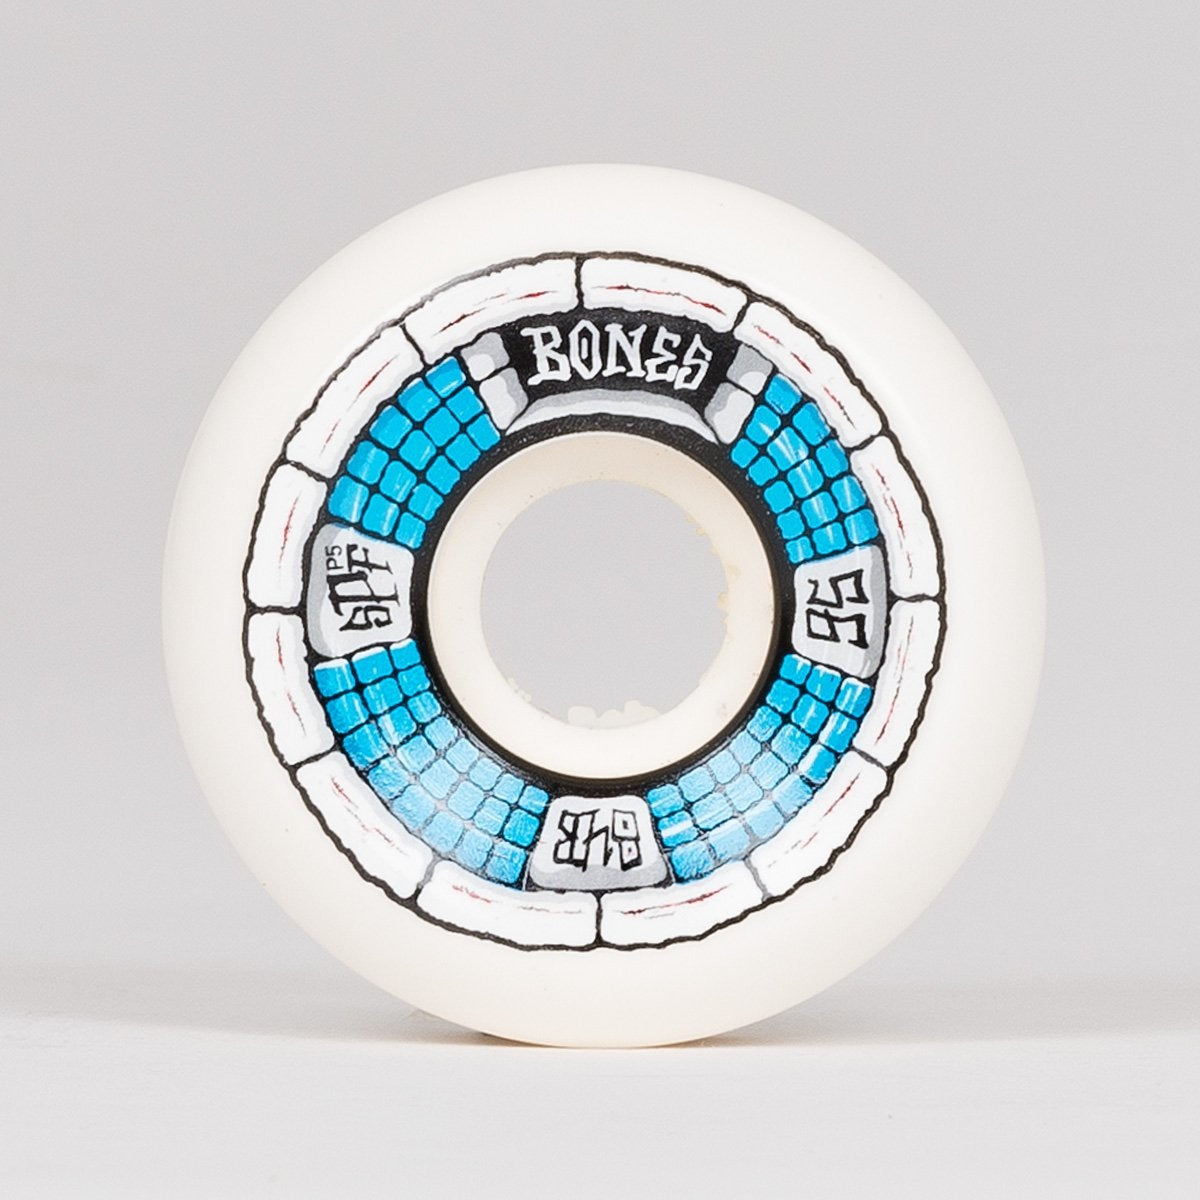 Bones Deathbox 84b P5 SPF Wheels White 56mm - Skateboard